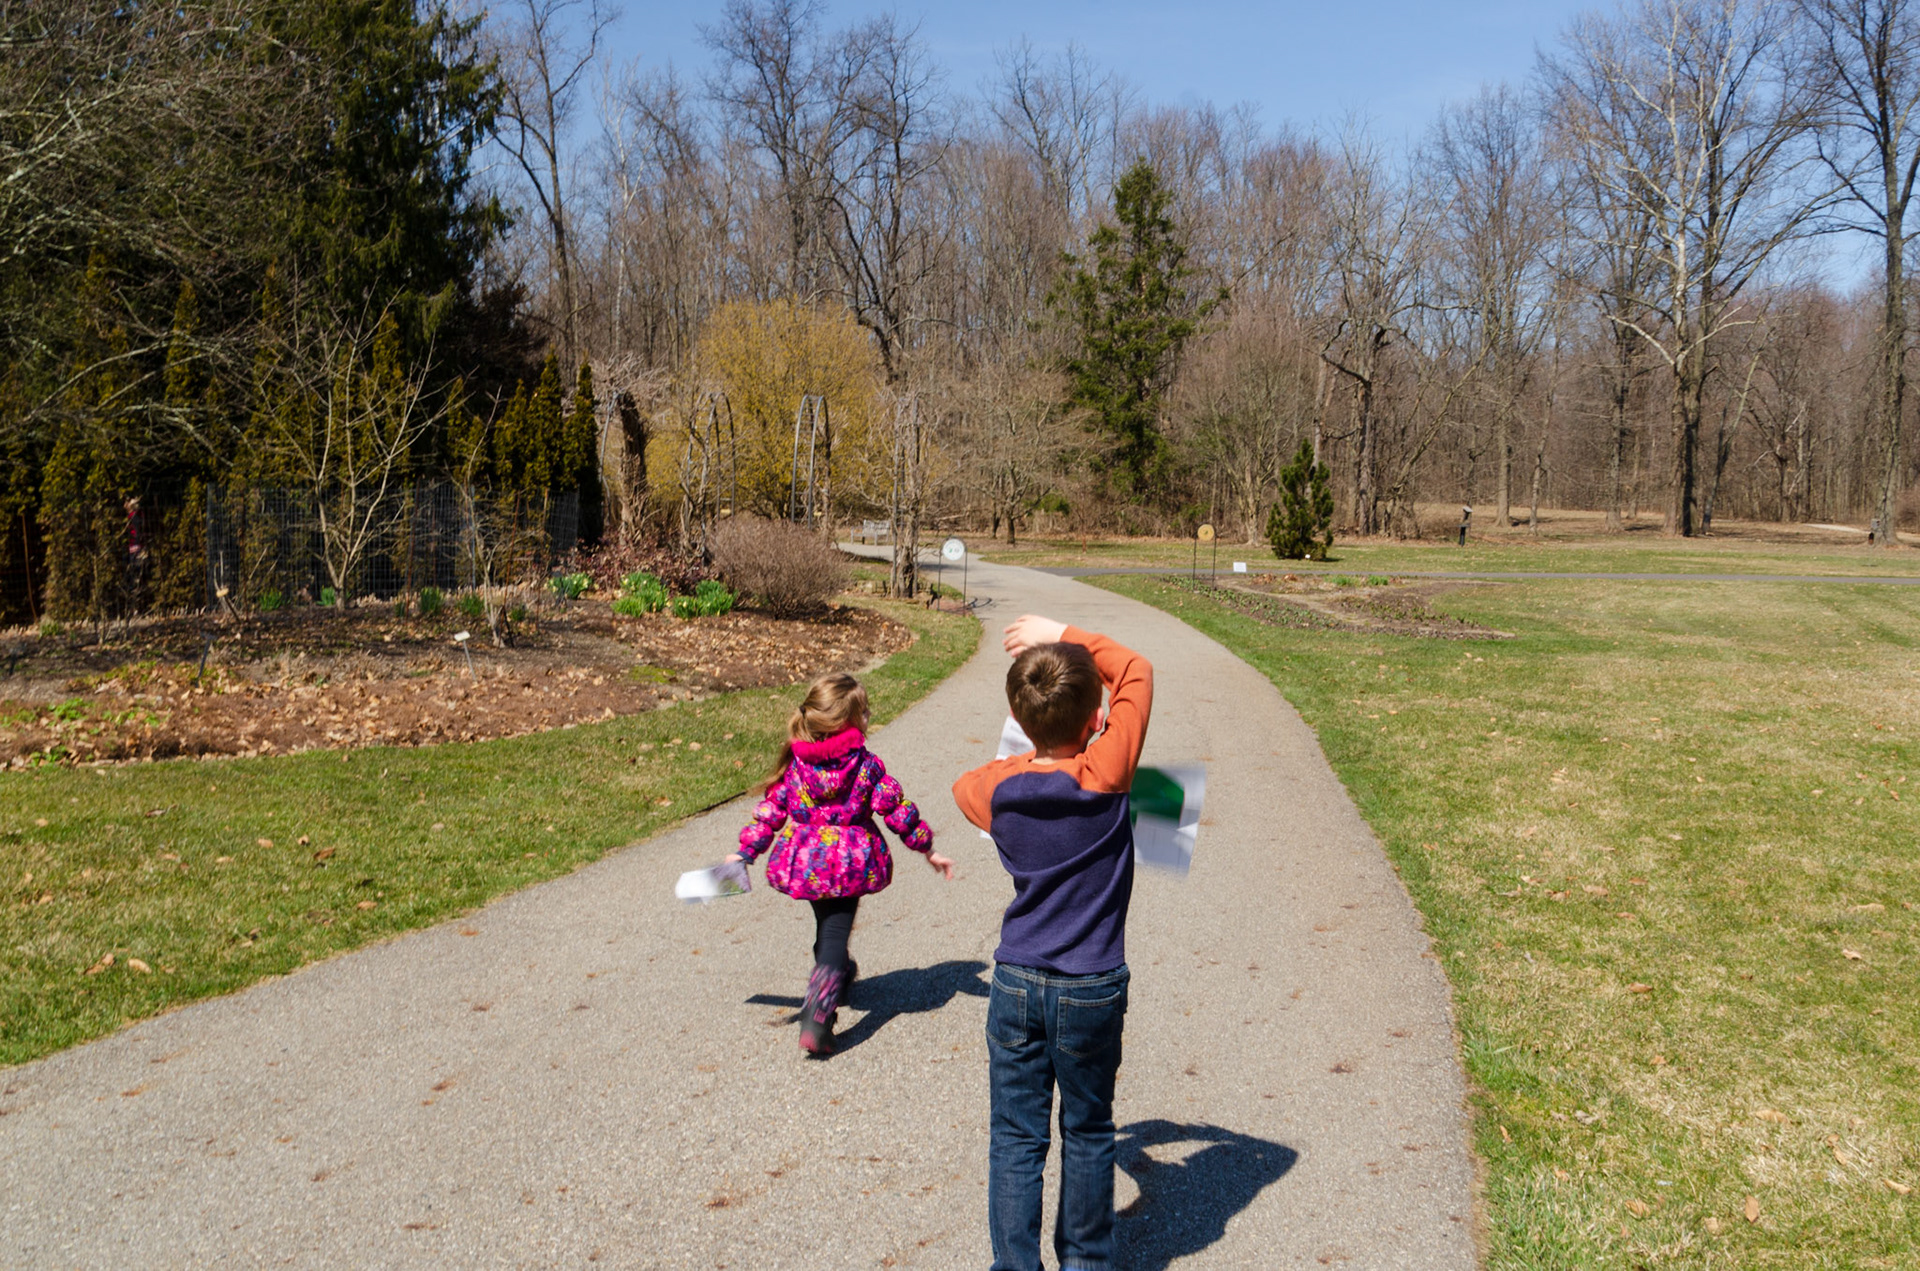 One80out Adventures - Inniswood Metro Gardens